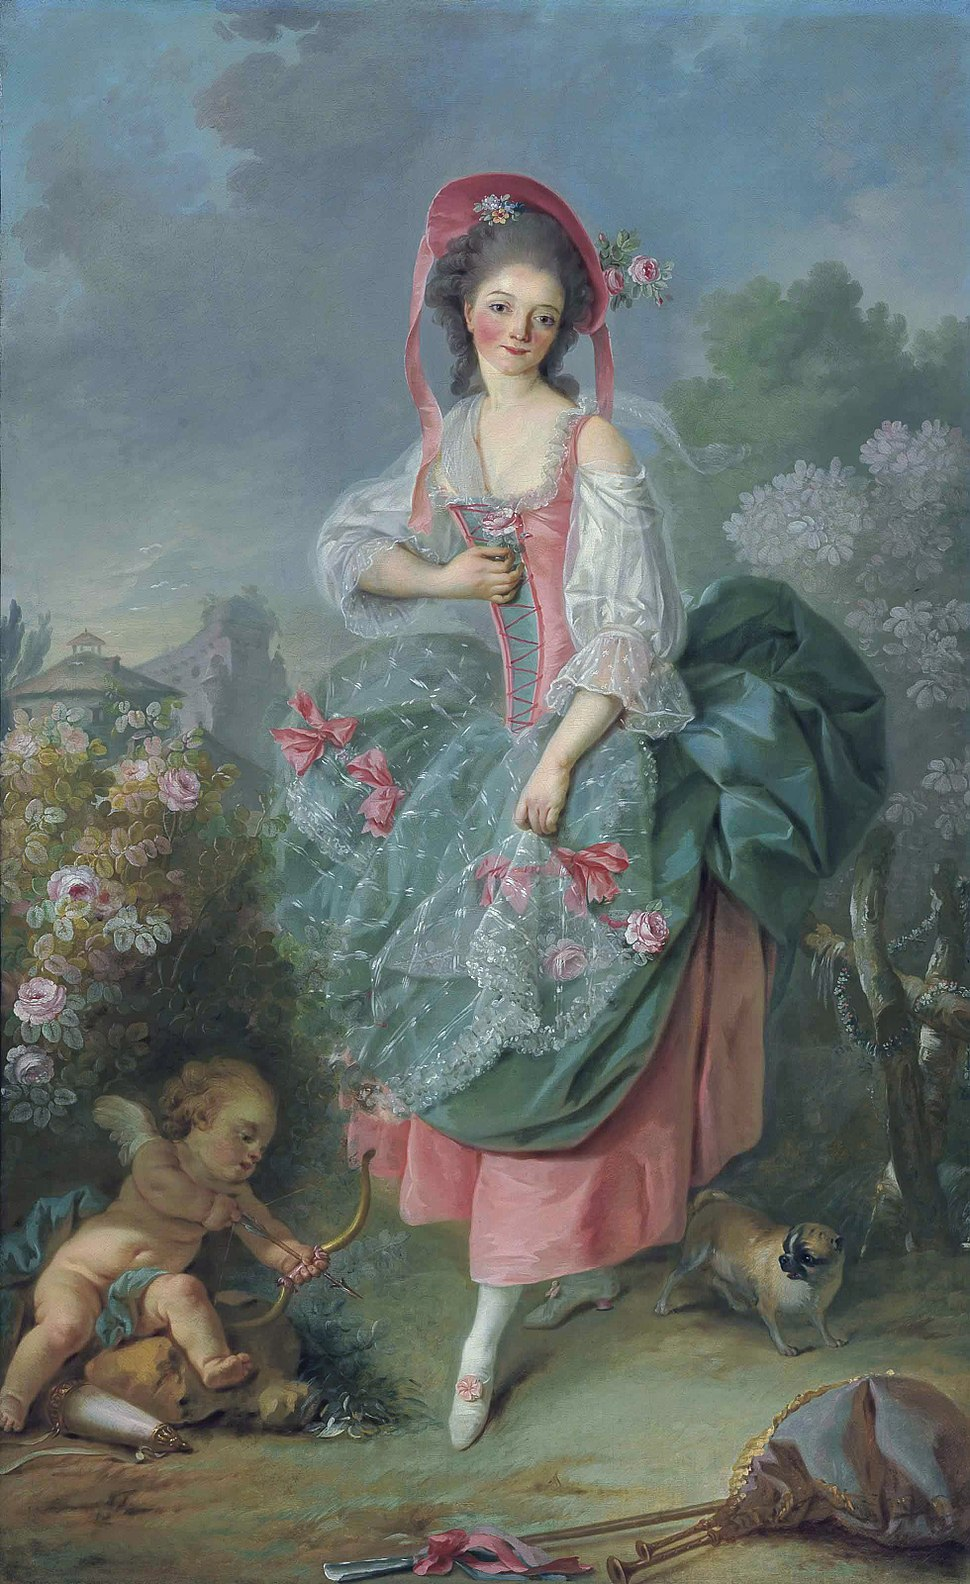 Mademoiselle Guimard as Terpsichore, by Jacques-Louis David